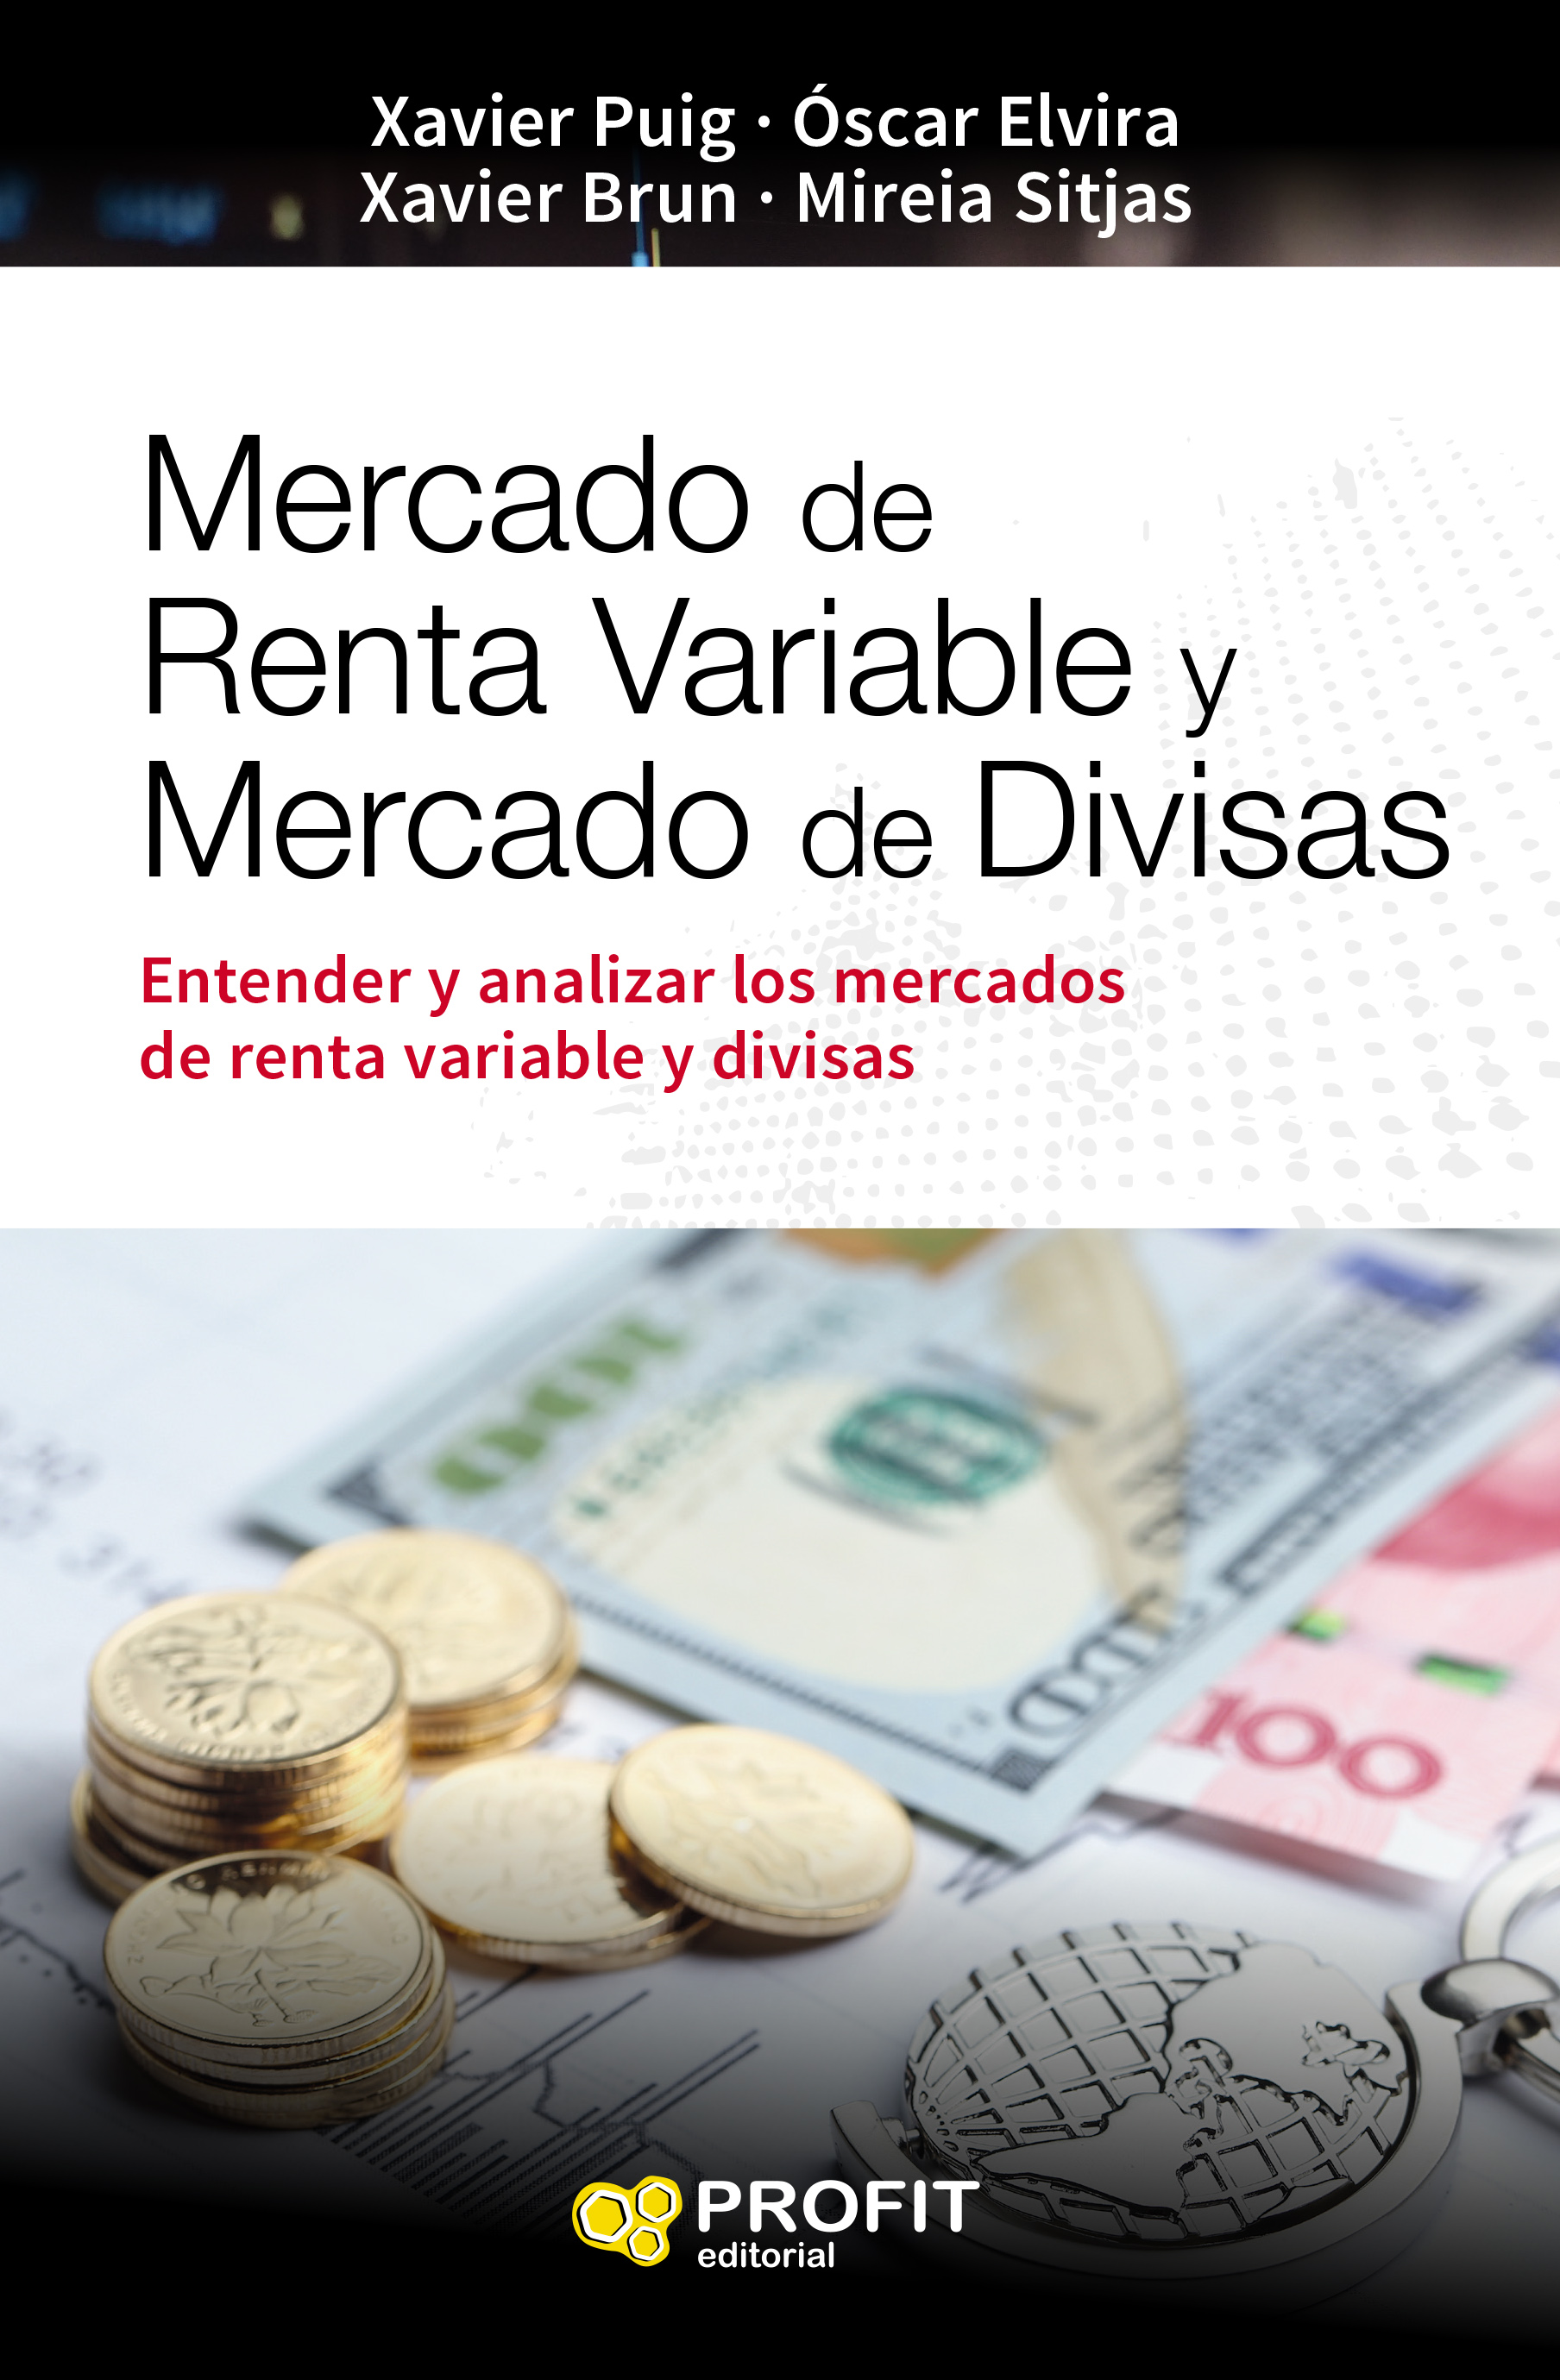 Mercado de renta variable y mercado de divisas NE (9788416115013)